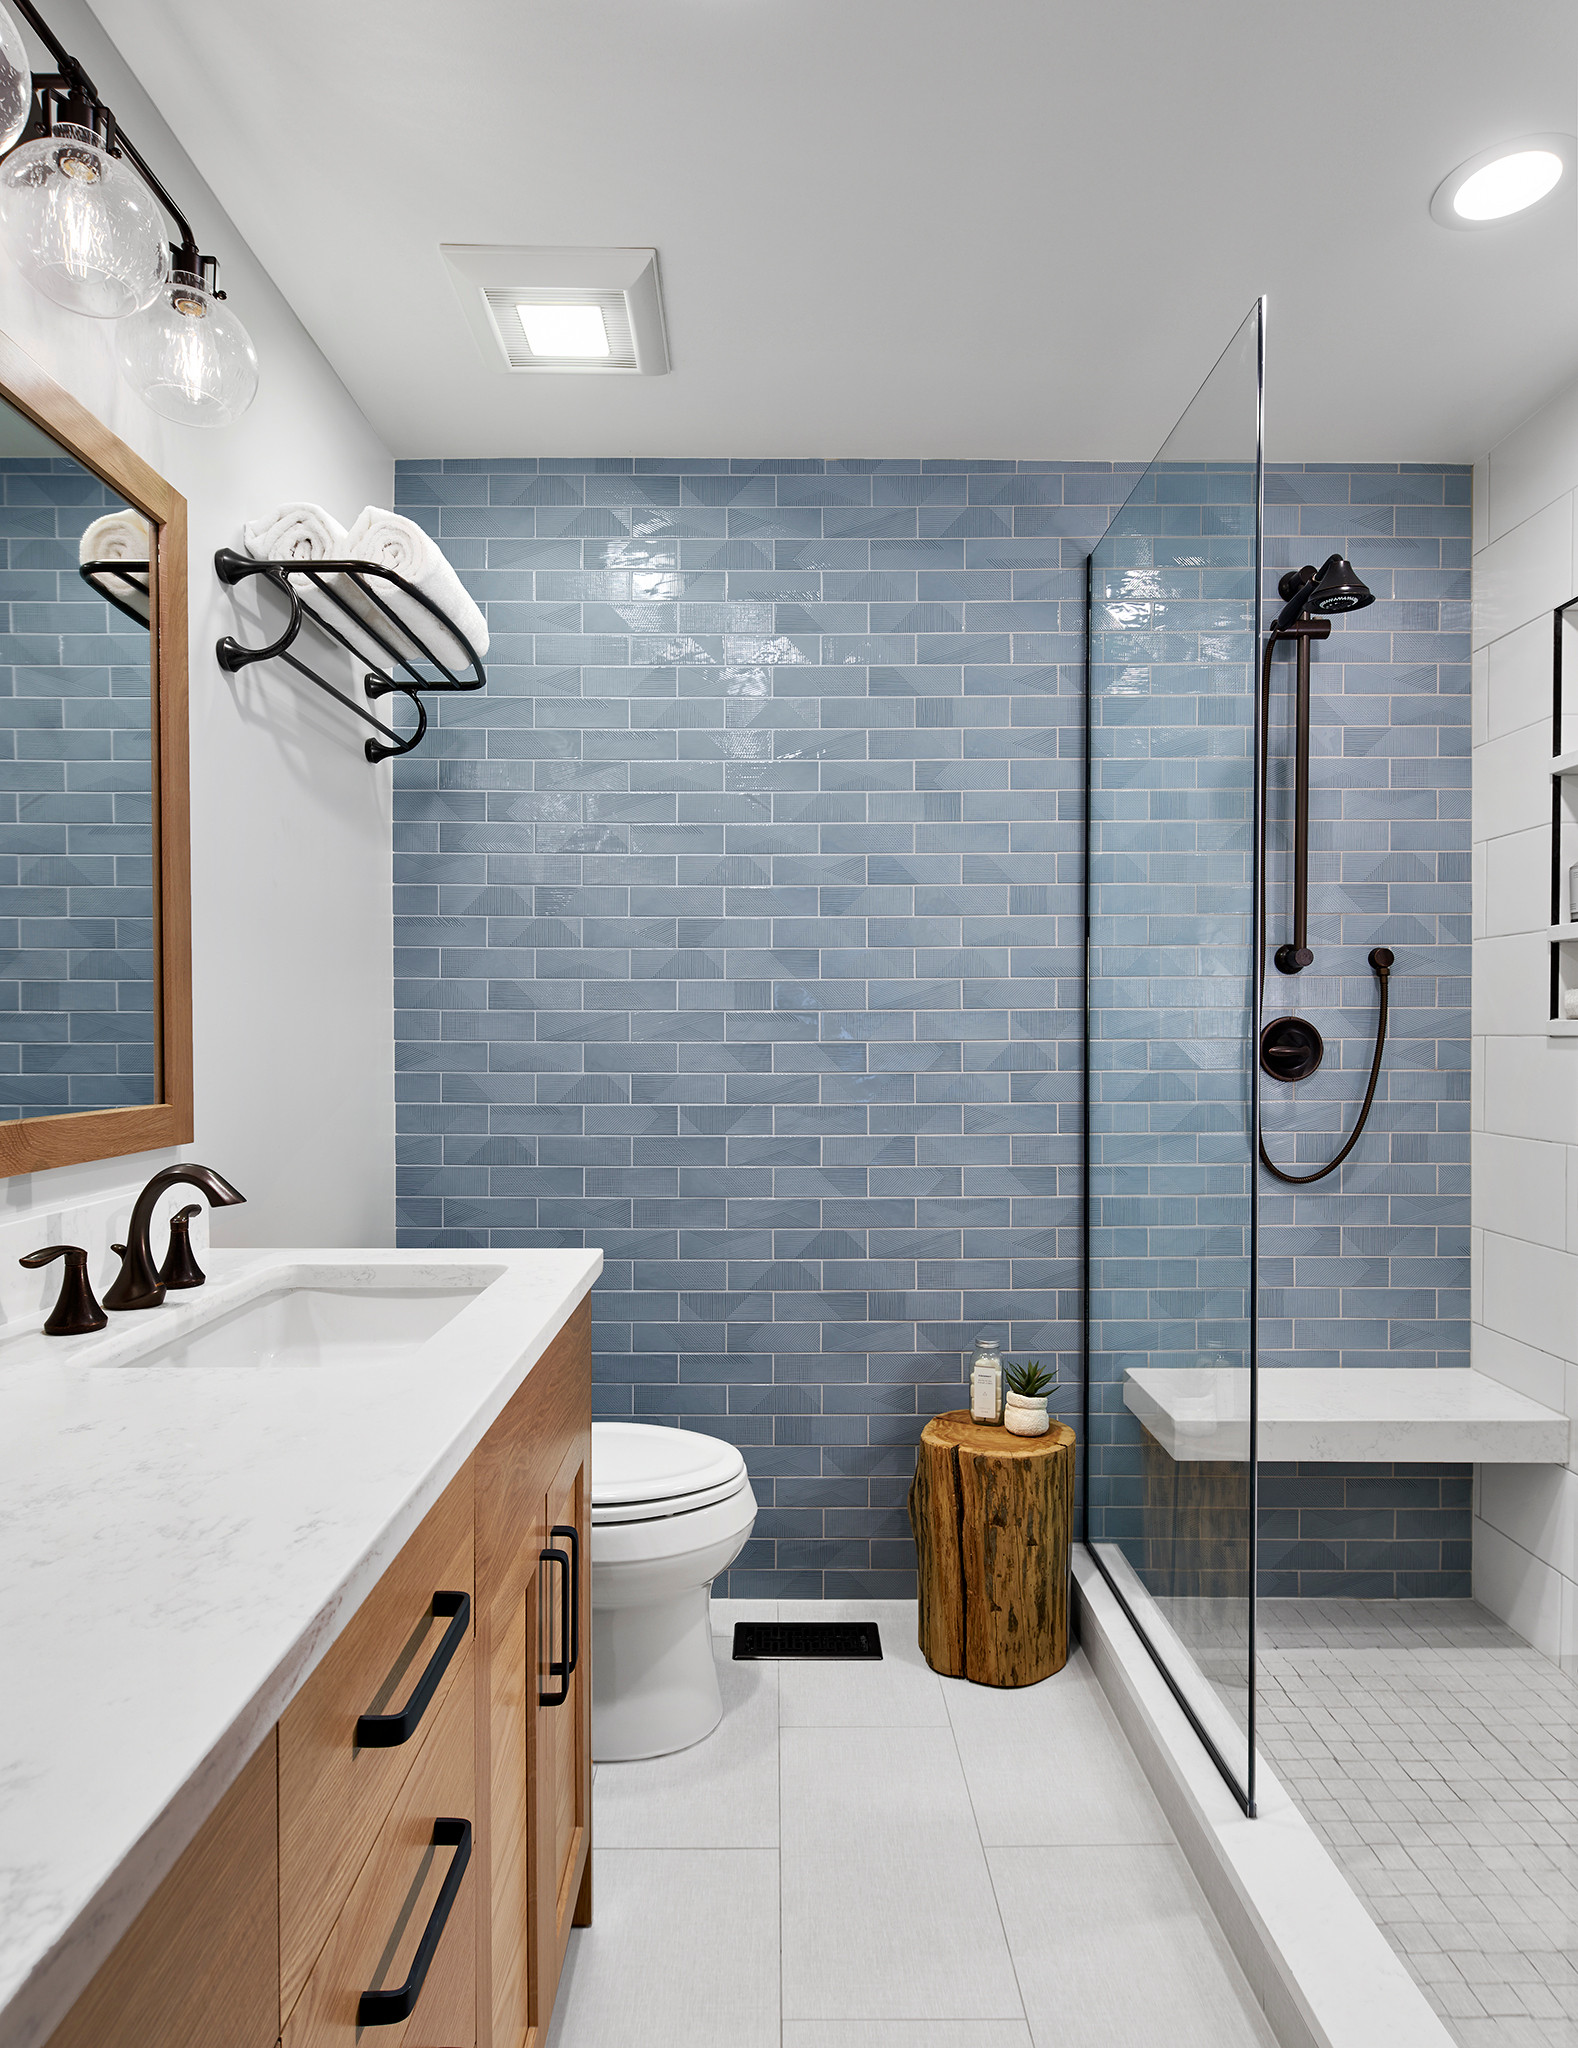 75 Beautiful Blue Tile Bathroom Pictures & Ideas - January, 2021 | Houzz